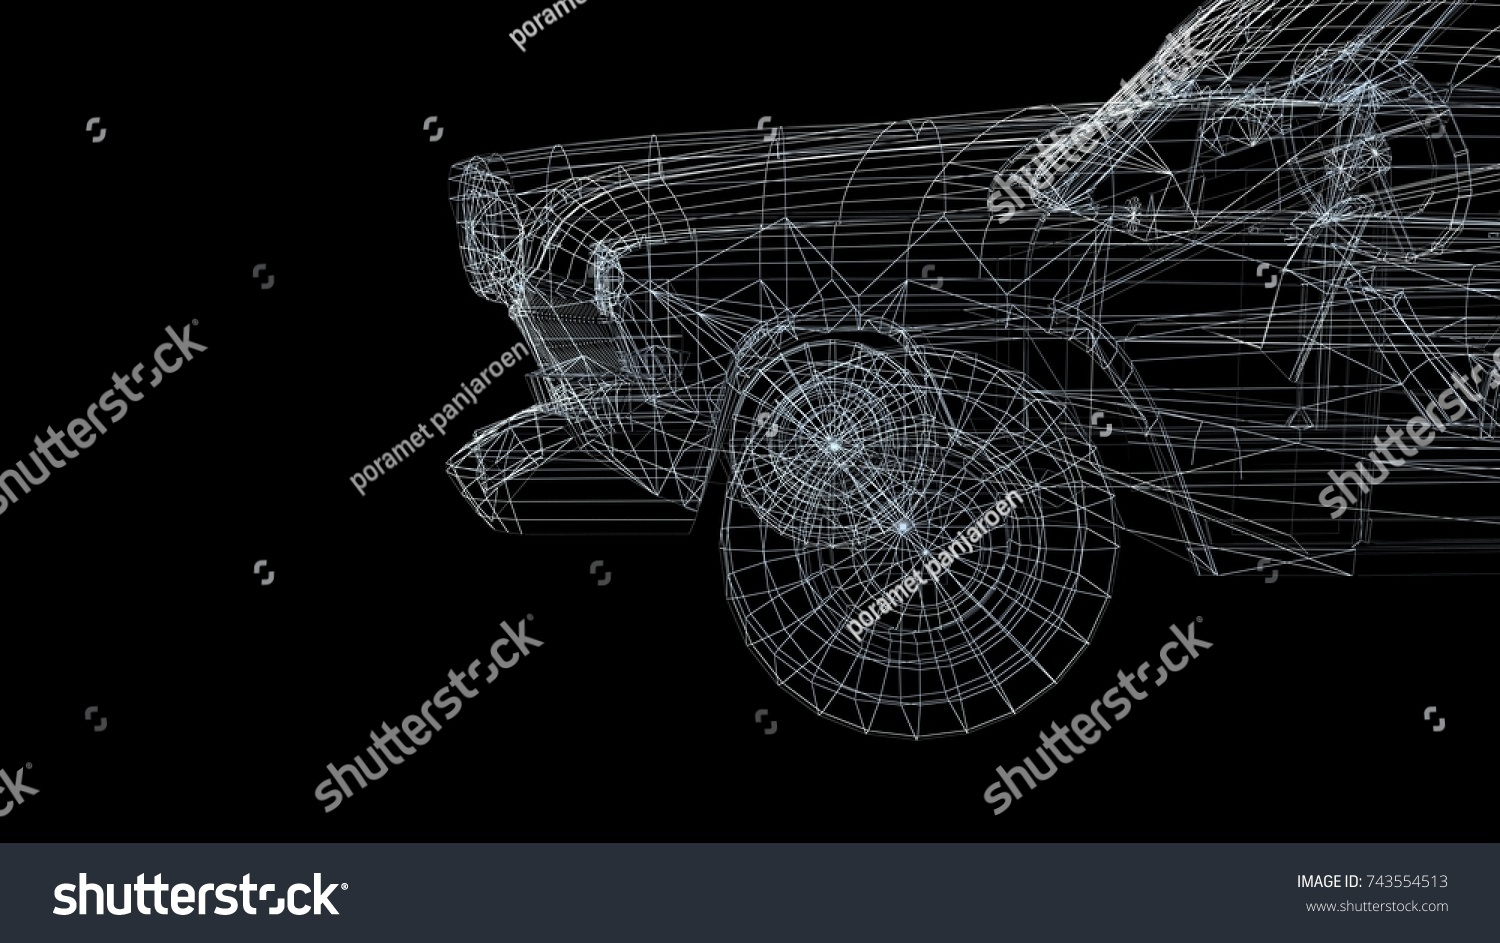 hight resolution of car model body structure wire model 3d rendering